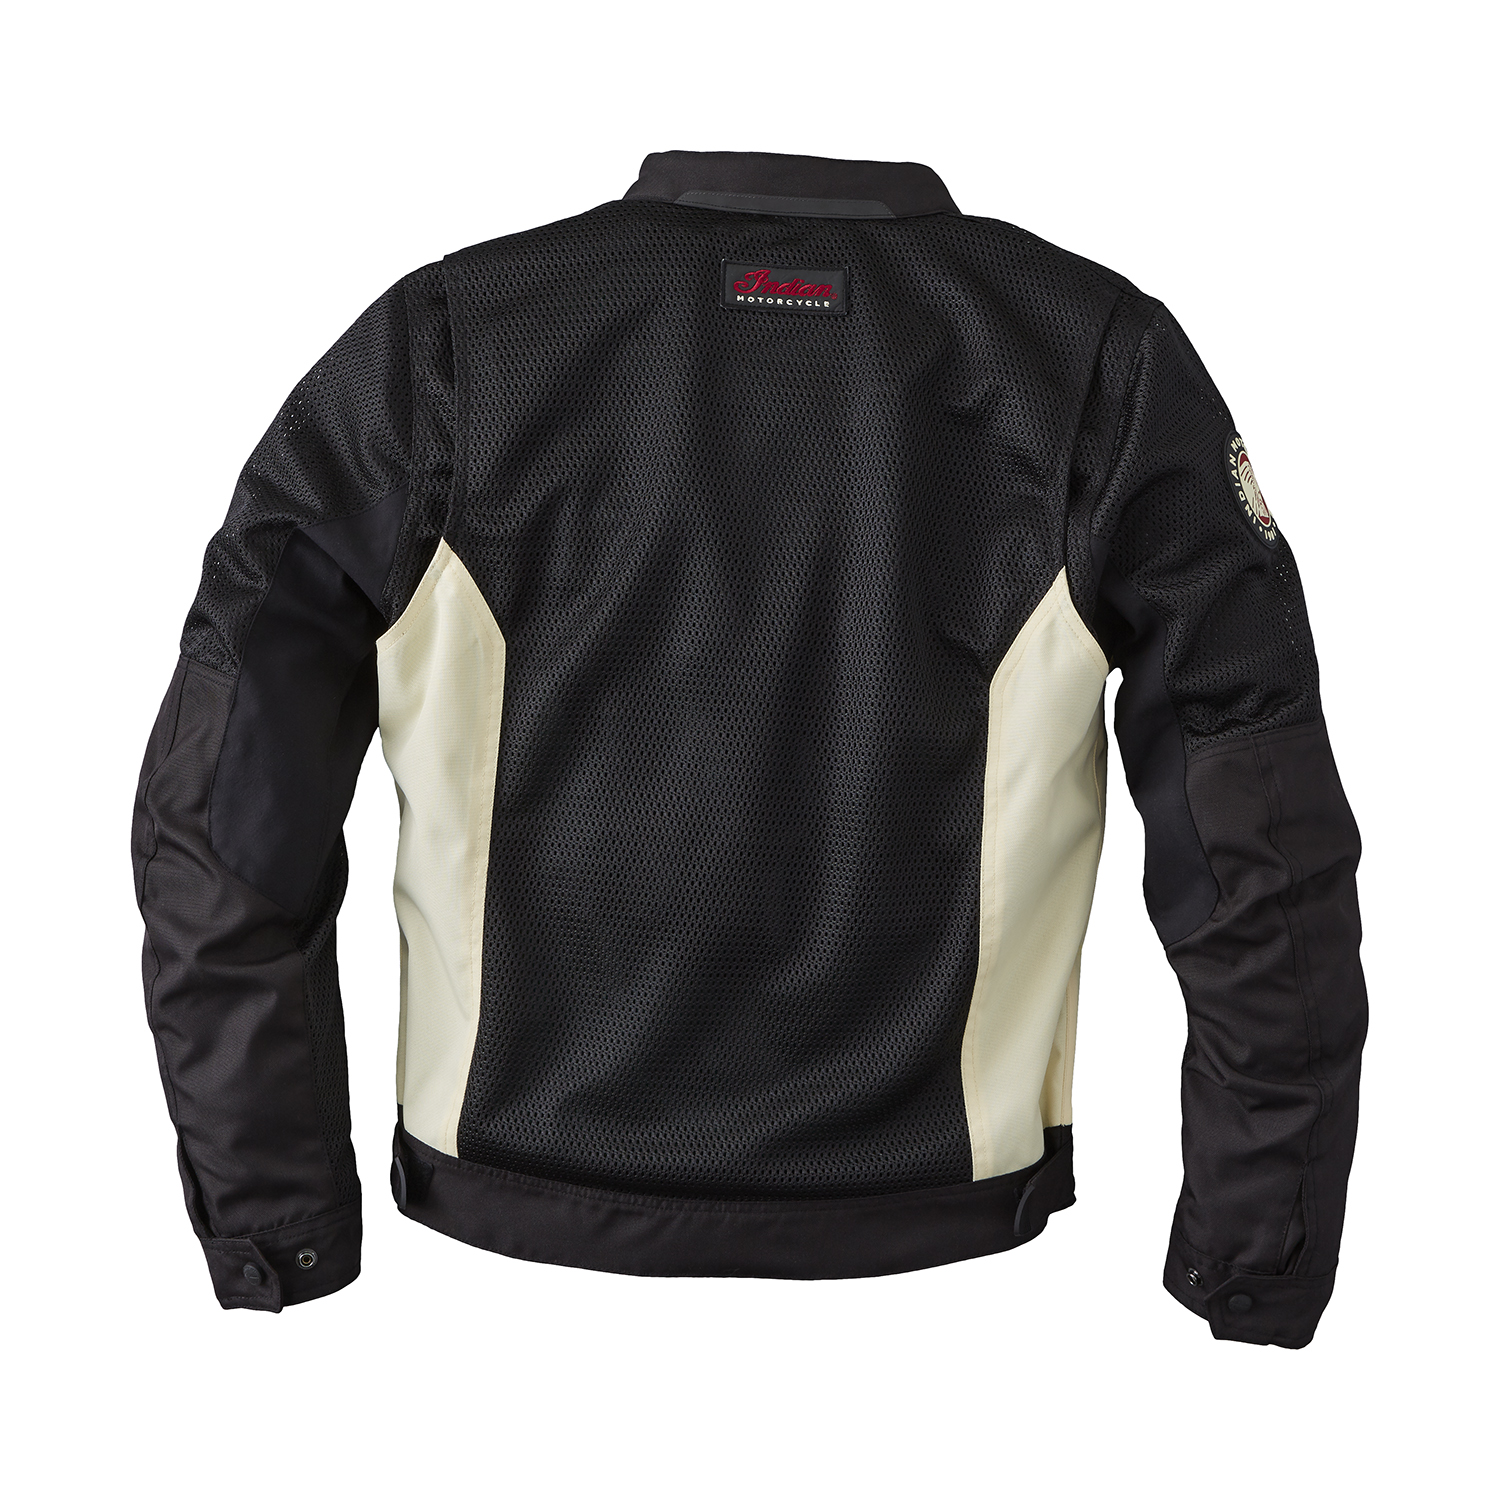 miniature 15 - Indian Motorcycle Men's Mesh Lightweight 2 Riding Jacket with Removable Liner